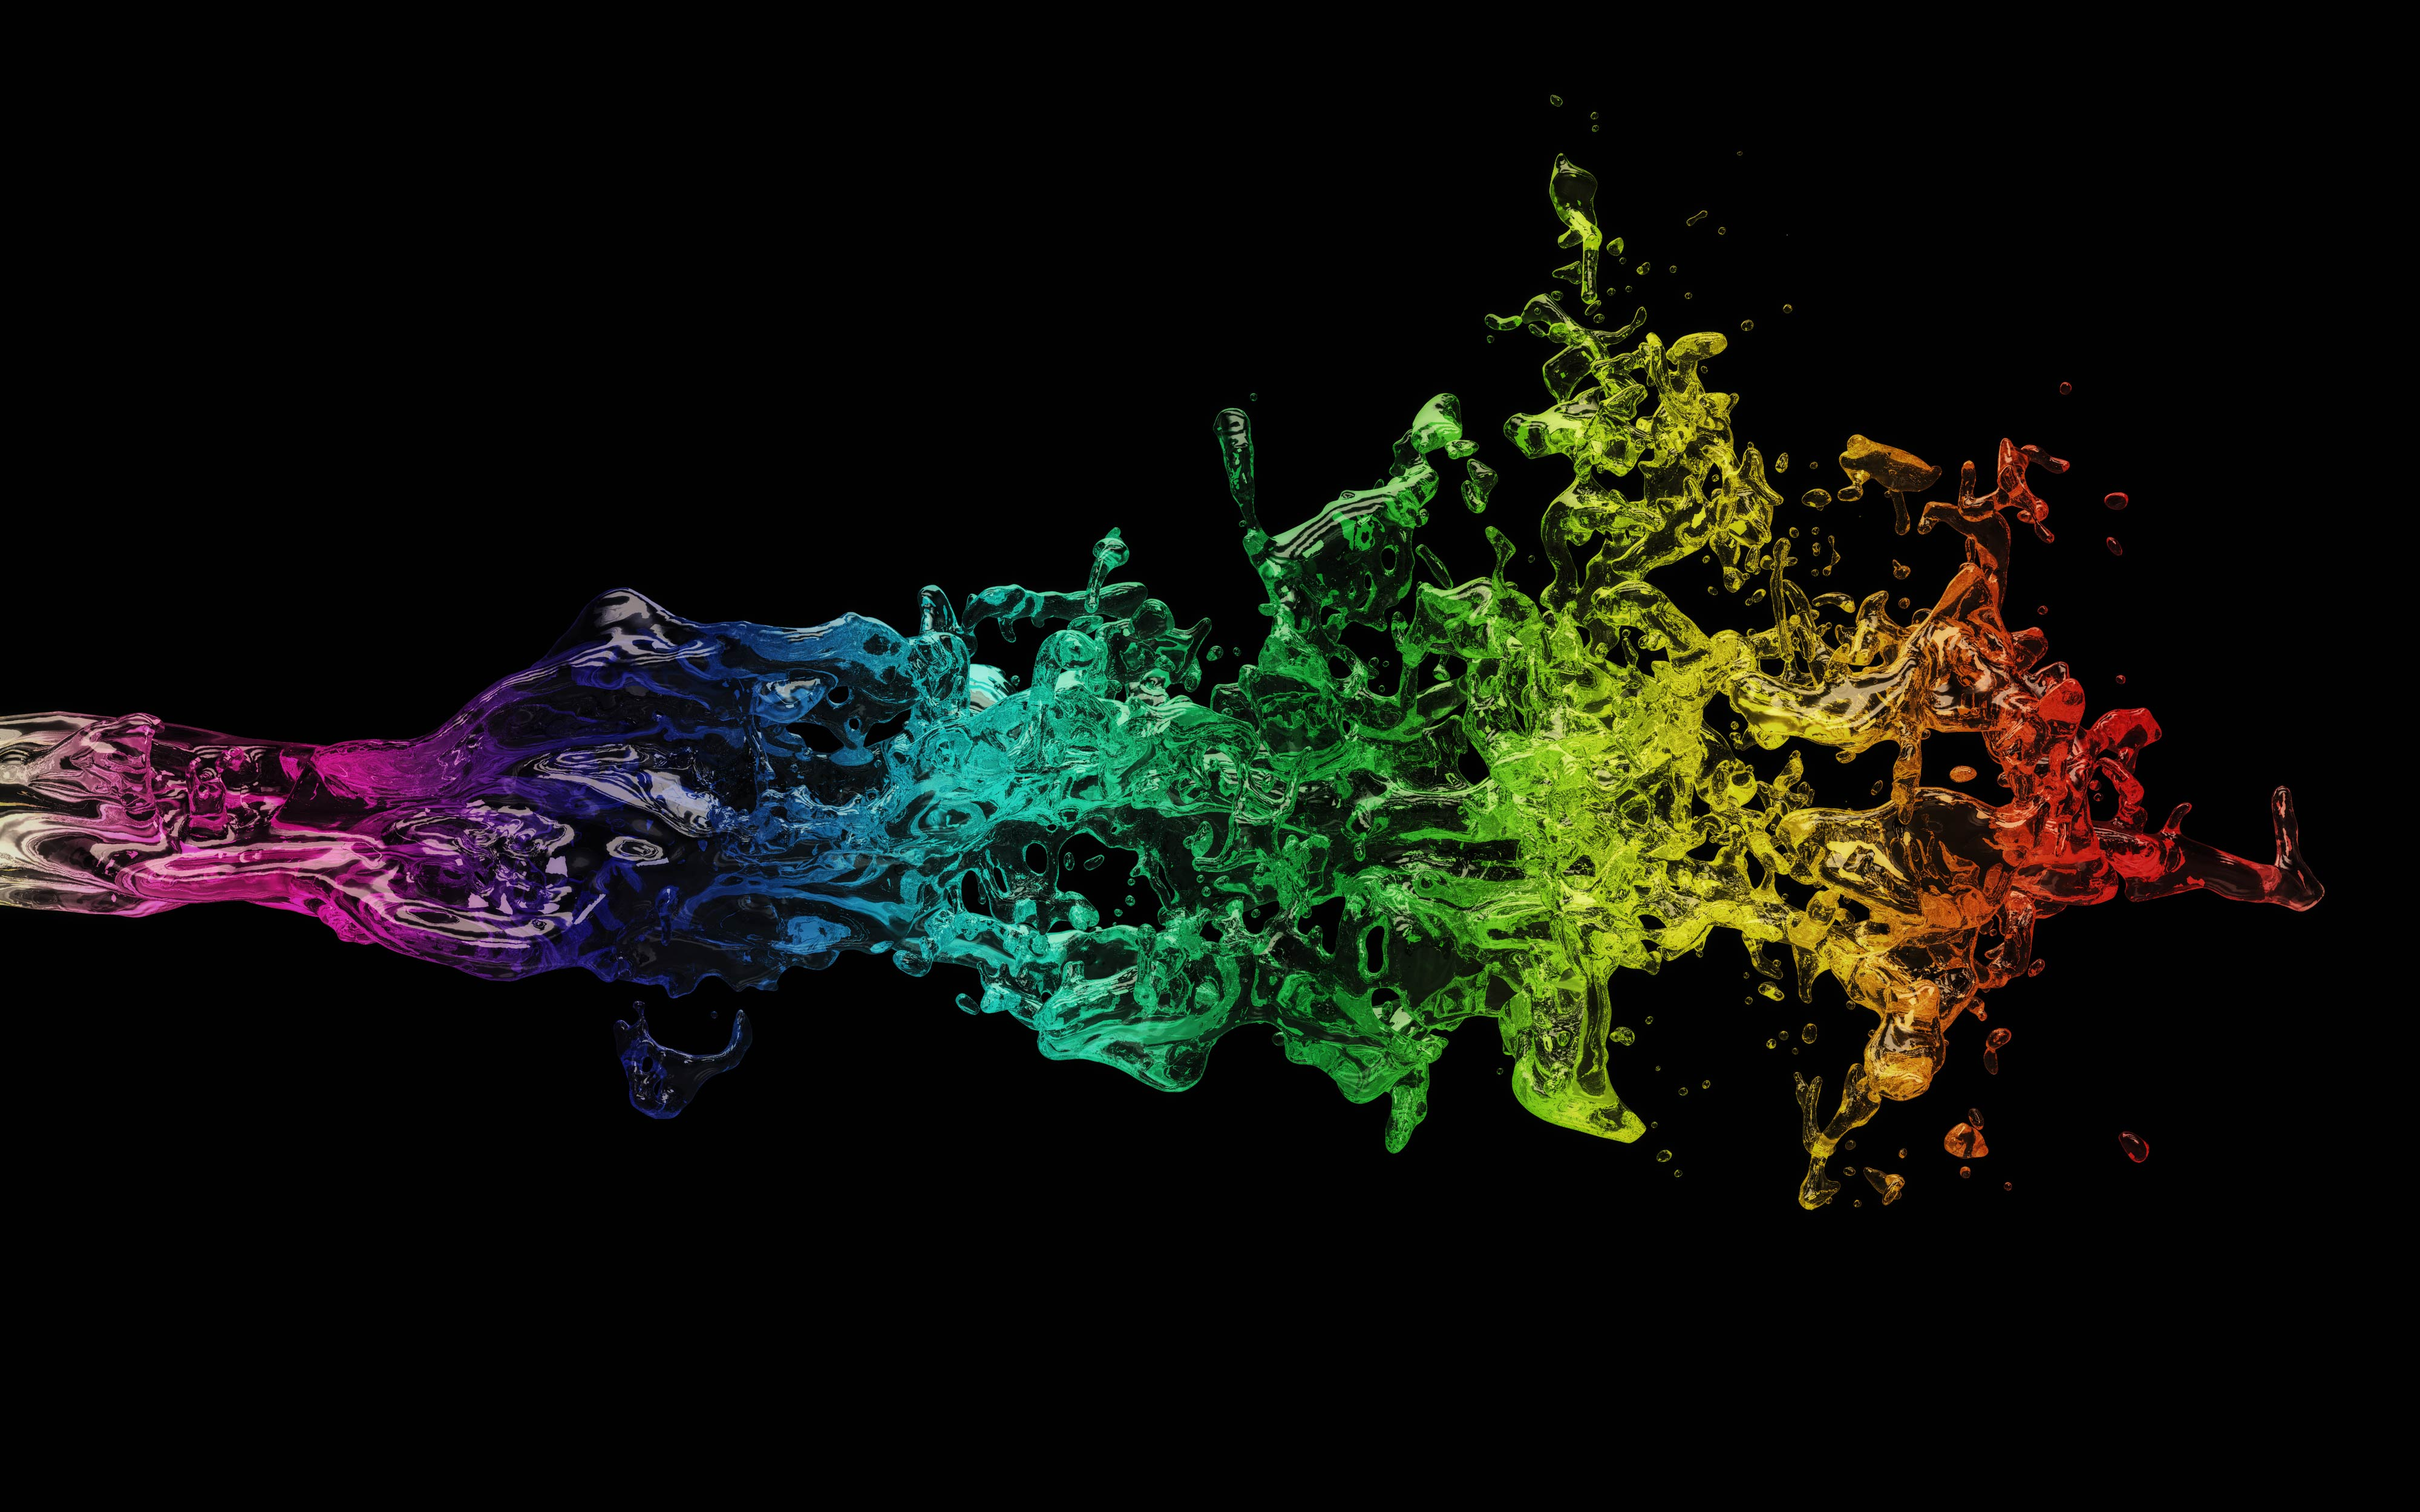 4k Ultra Hd Abstract Wallpapers Top Free 4k Ultra Hd